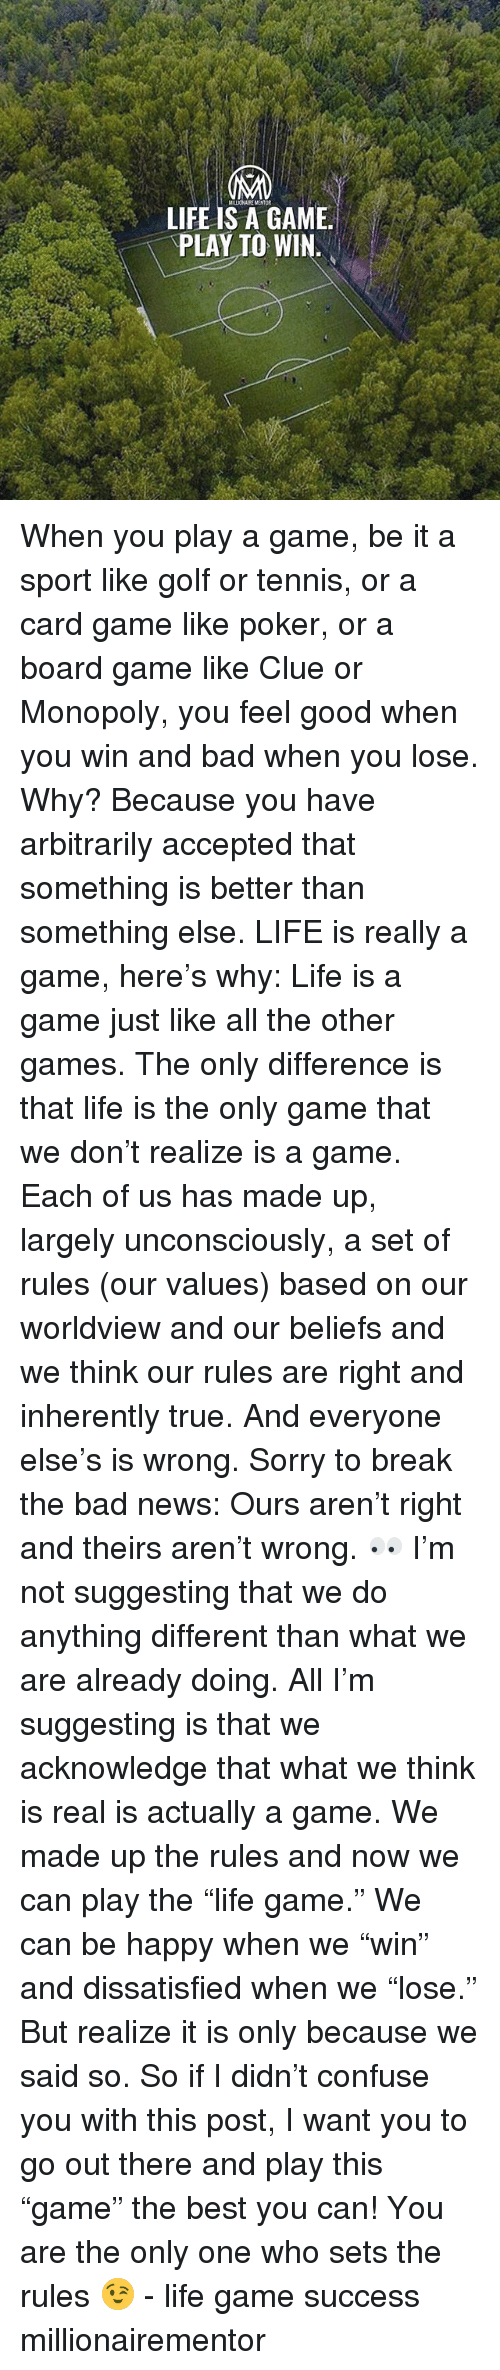 """Board Game: LIFE IS A GAME.  PLAY TO WIN. When you play a game, be it a sport like golf or tennis, or a card game like poker, or a board game like Clue or Monopoly, you feel good when you win and bad when you lose. Why? Because you have arbitrarily accepted that something is better than something else. LIFE is really a game, here's why: Life is a game just like all the other games. The only difference is that life is the only game that we don't realize is a game. Each of us has made up, largely unconsciously, a set of rules (our values) based on our worldview and our beliefs and we think our rules are right and inherently true. And everyone else's is wrong. Sorry to break the bad news: Ours aren't right and theirs aren't wrong. 👀 I'm not suggesting that we do anything different than what we are already doing. All I'm suggesting is that we acknowledge that what we think is real is actually a game. We made up the rules and now we can play the """"life game."""" We can be happy when we """"win"""" and dissatisfied when we """"lose."""" But realize it is only because we said so. So if I didn't confuse you with this post, I want you to go out there and play this """"game"""" the best you can! You are the only one who sets the rules 😉 - life game success millionairementor"""